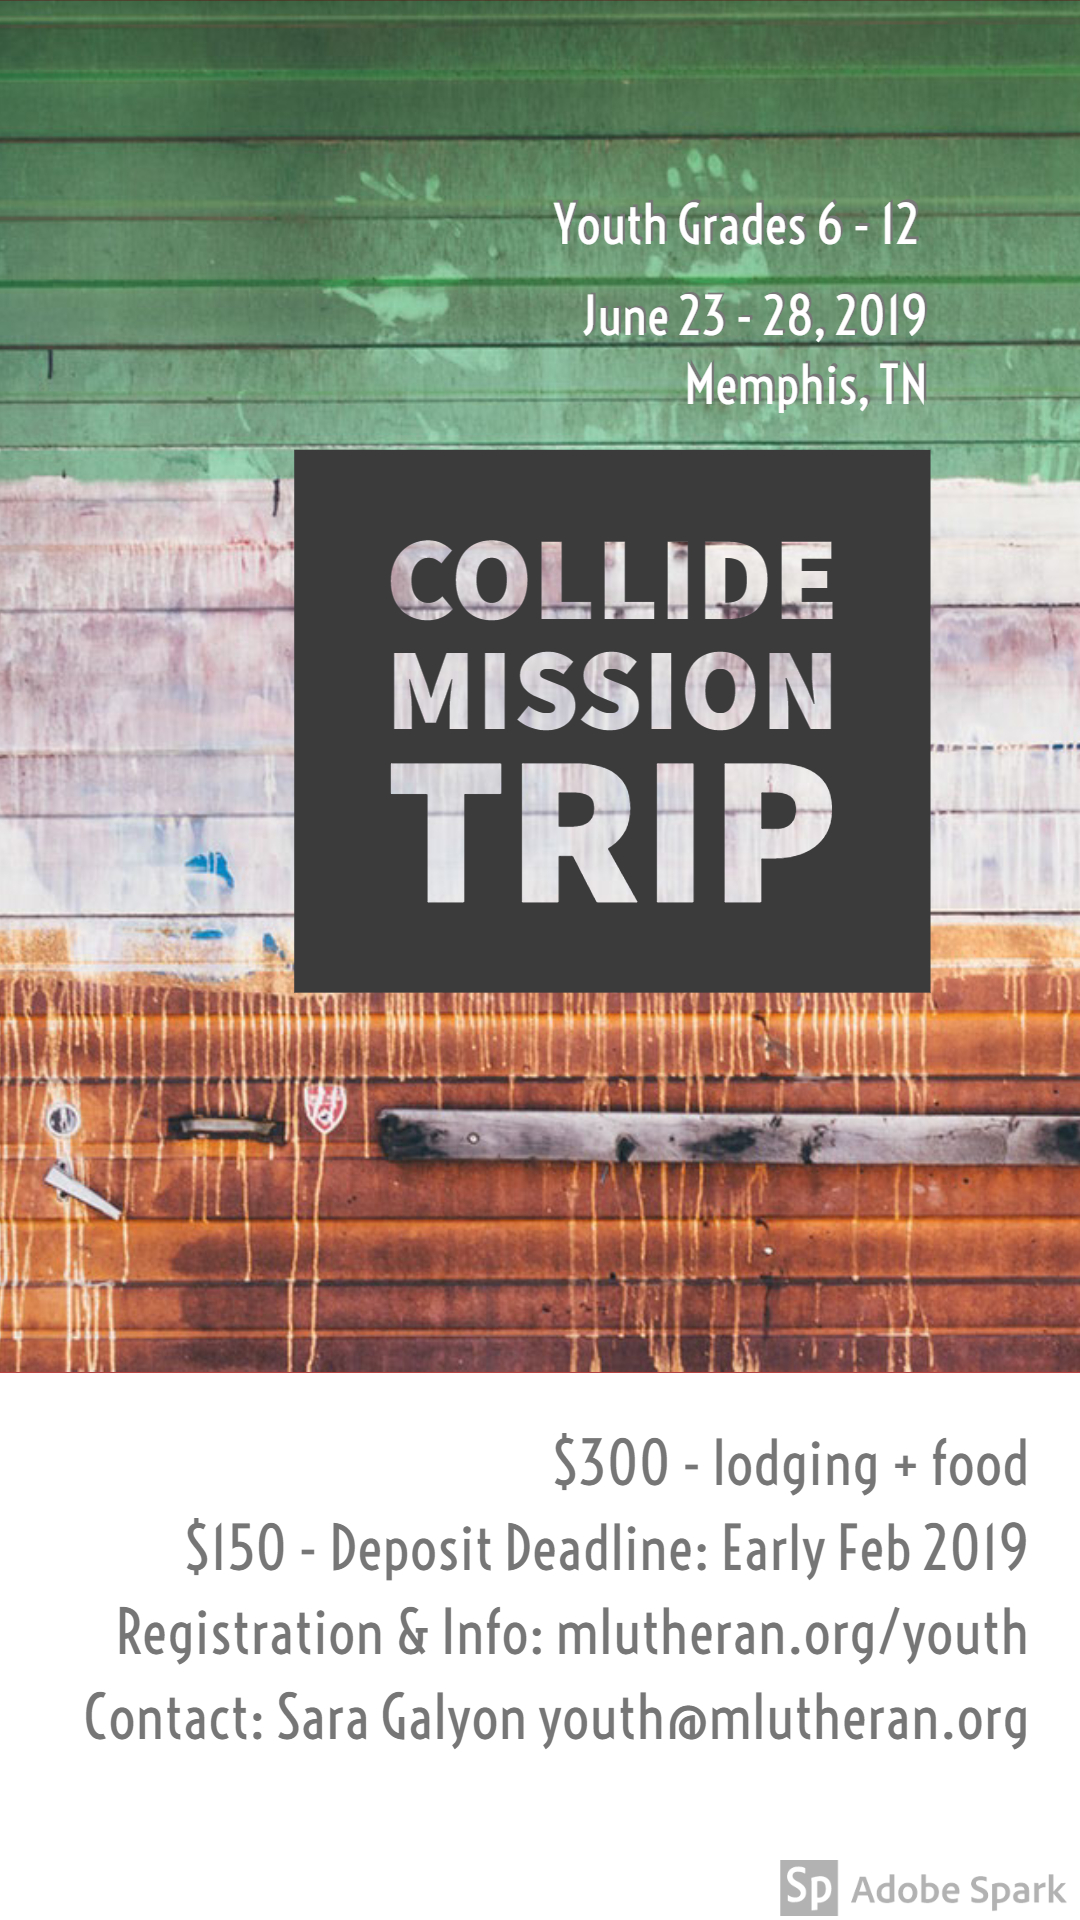 Collide-Mission-Trip-Graphic.jpg